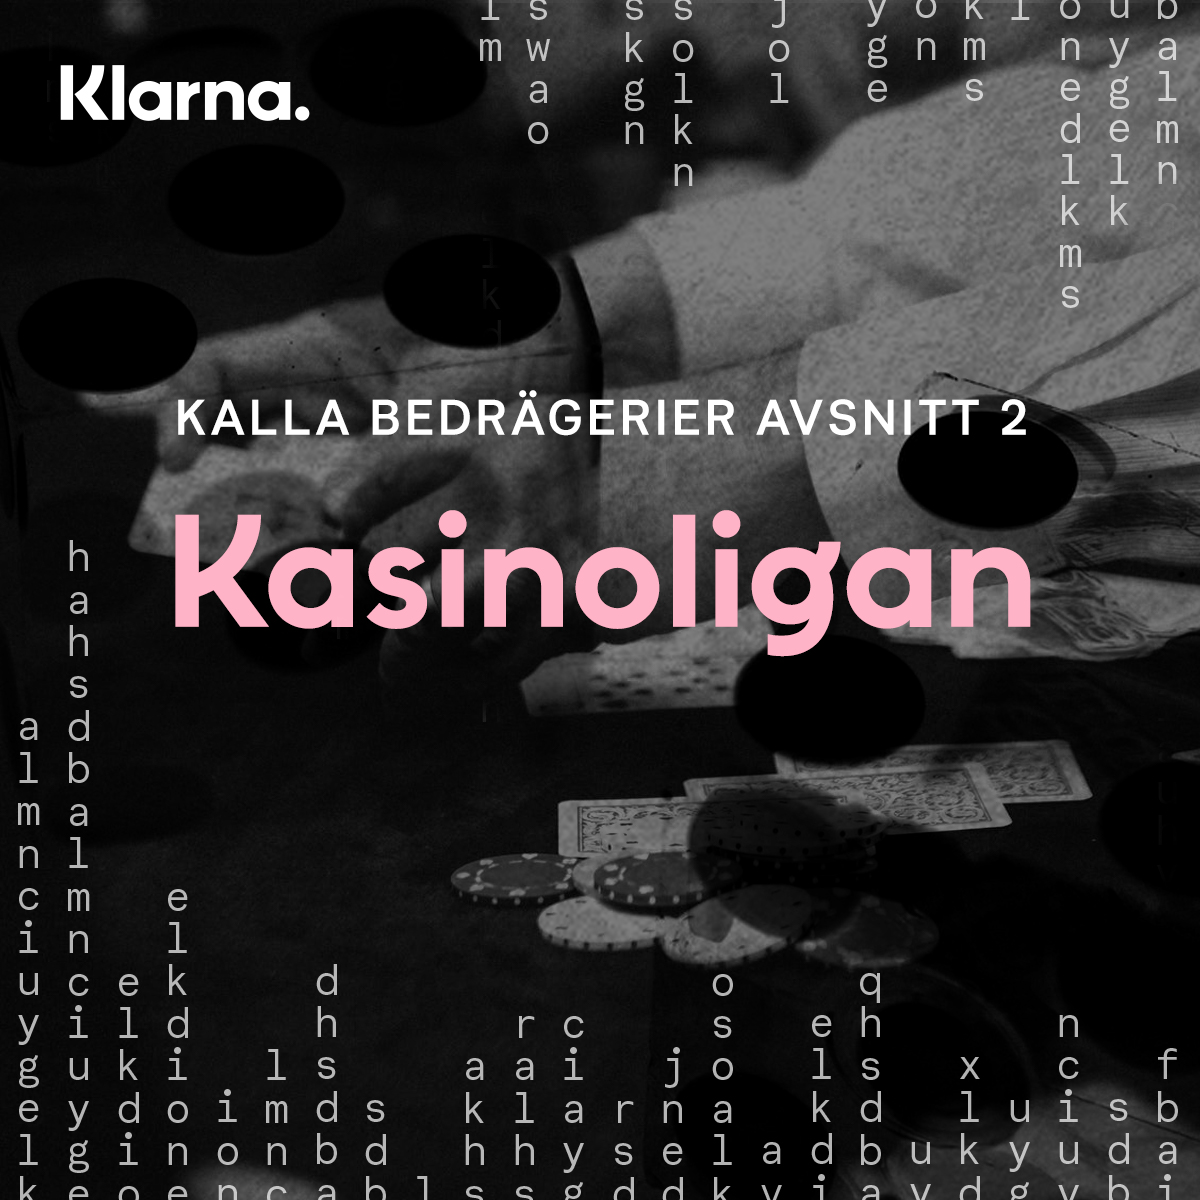 2. Kasinoligan